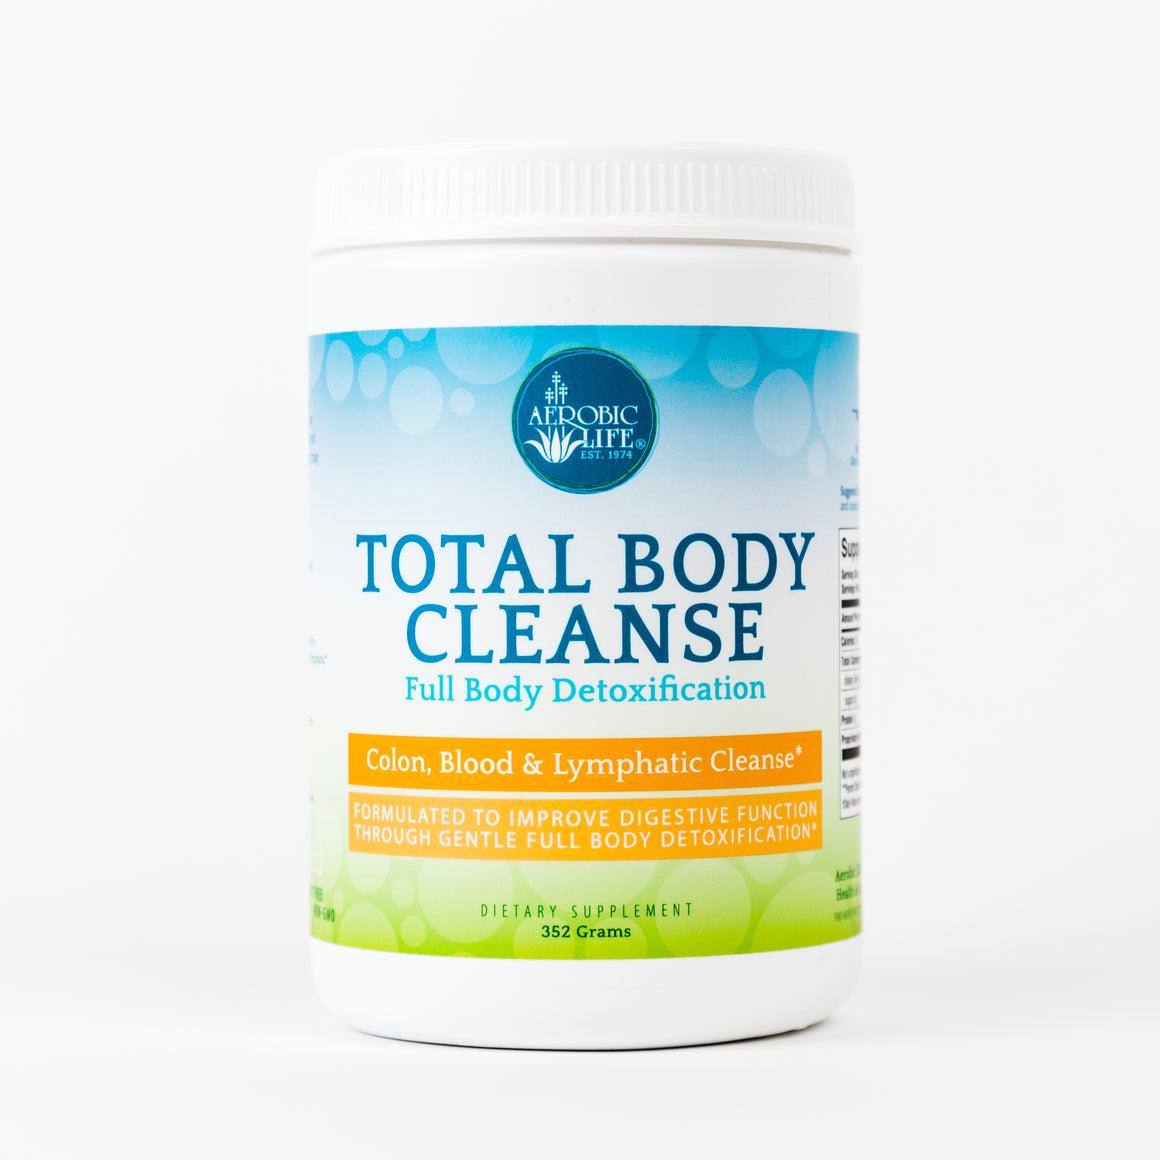 Total Body Cleanse